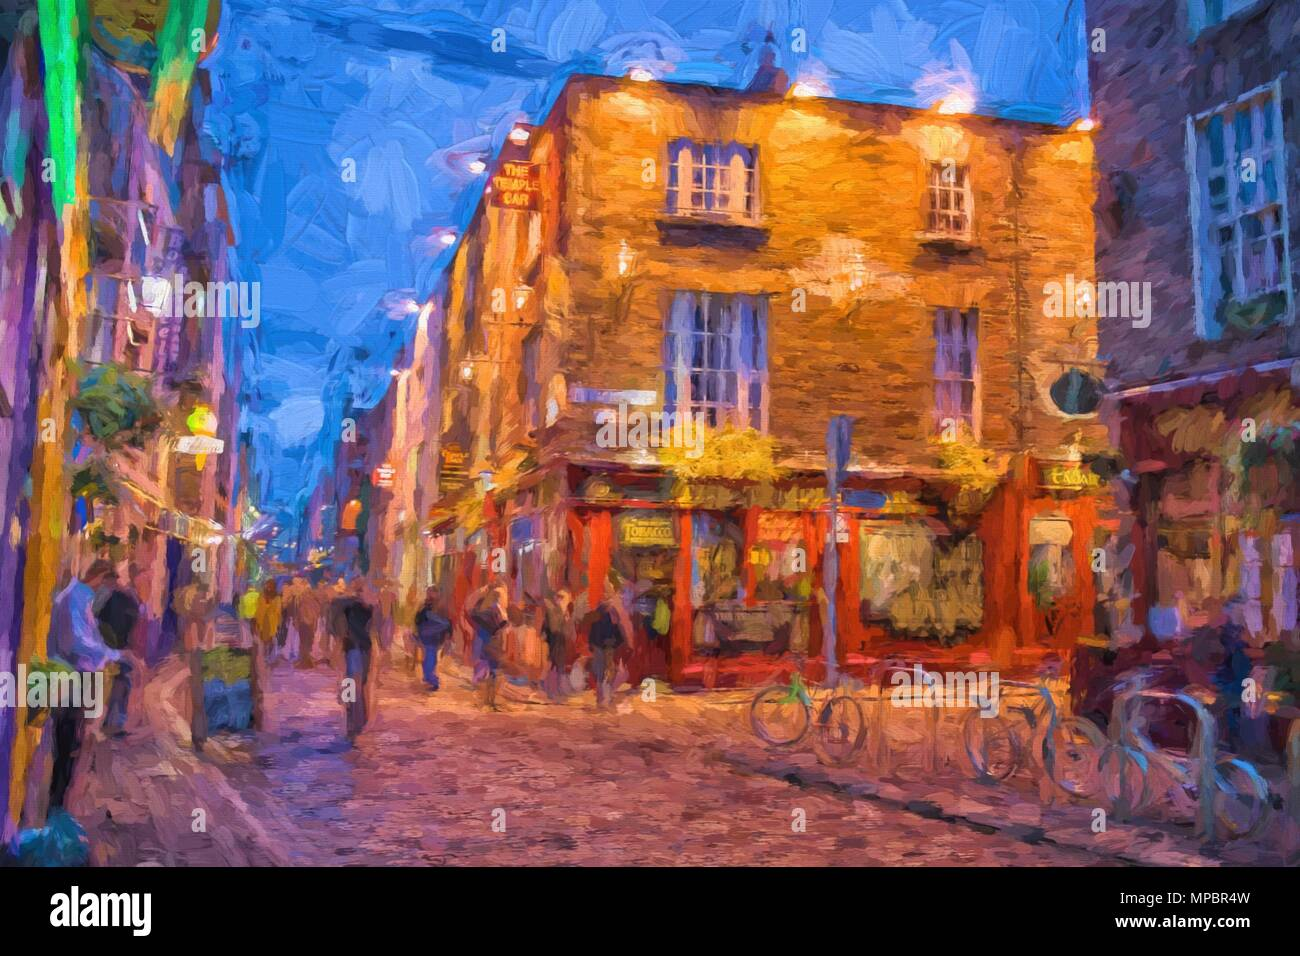 Digital painting of people at night in the Temple Bar district in Dublin . The Temple bar district is worldfamous for it - Stock Image